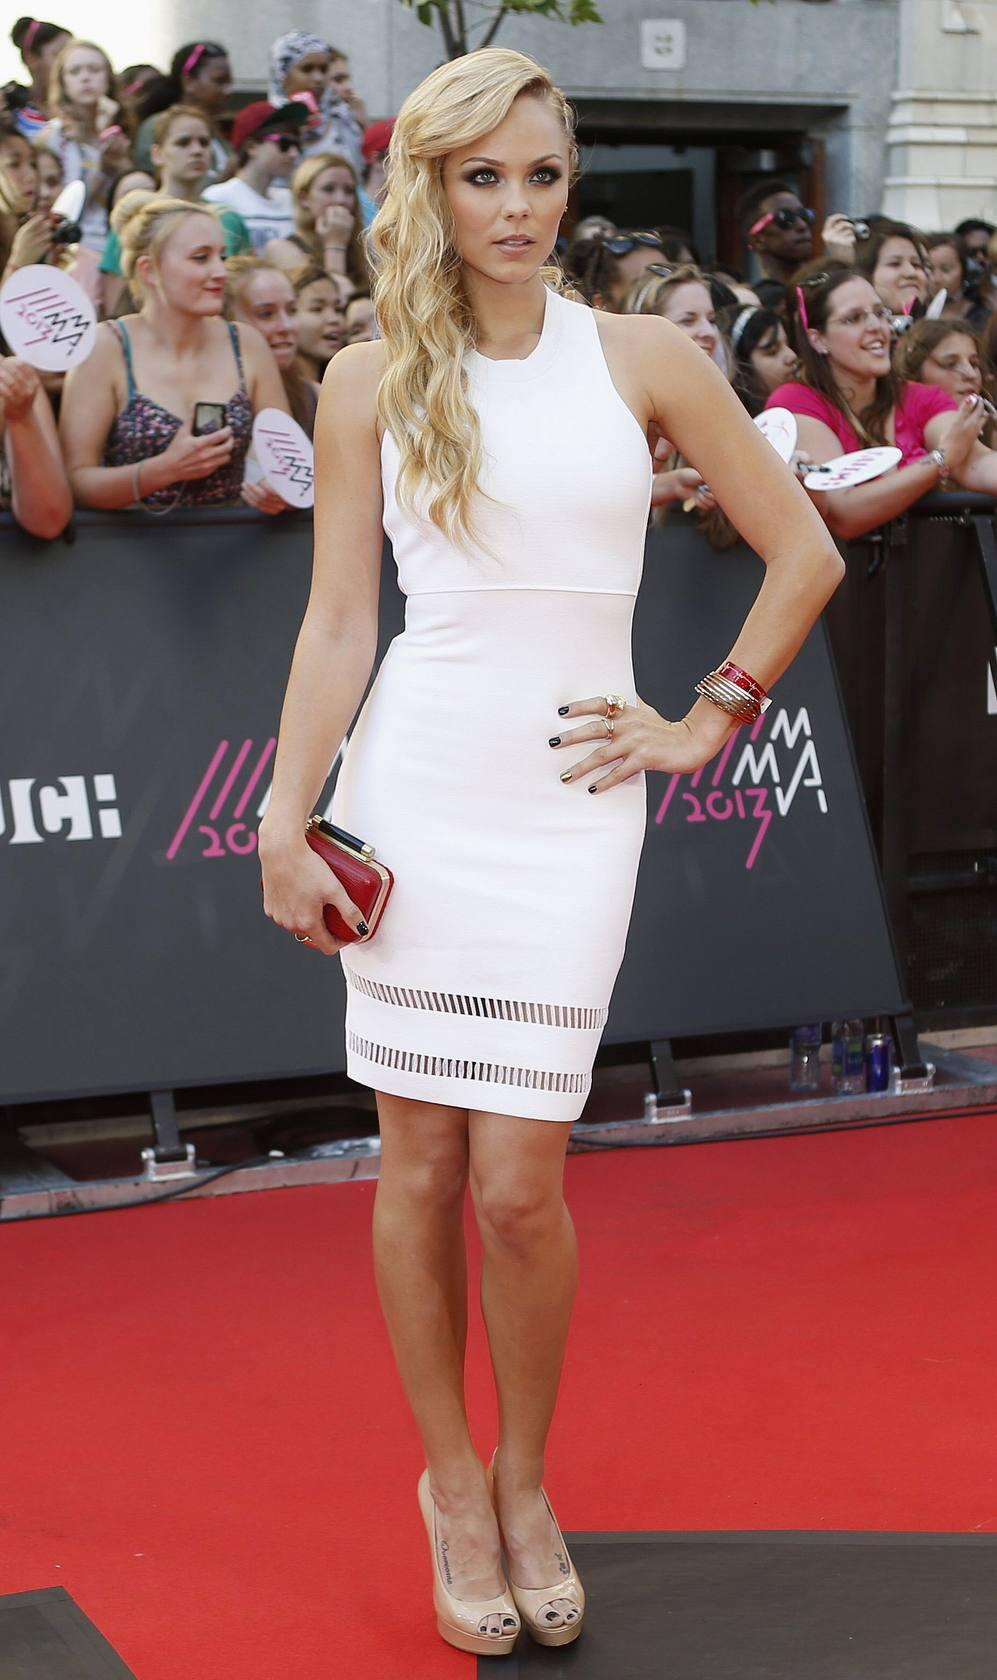 La alfombra roja de los MuchMusic Video Awards en Toronto